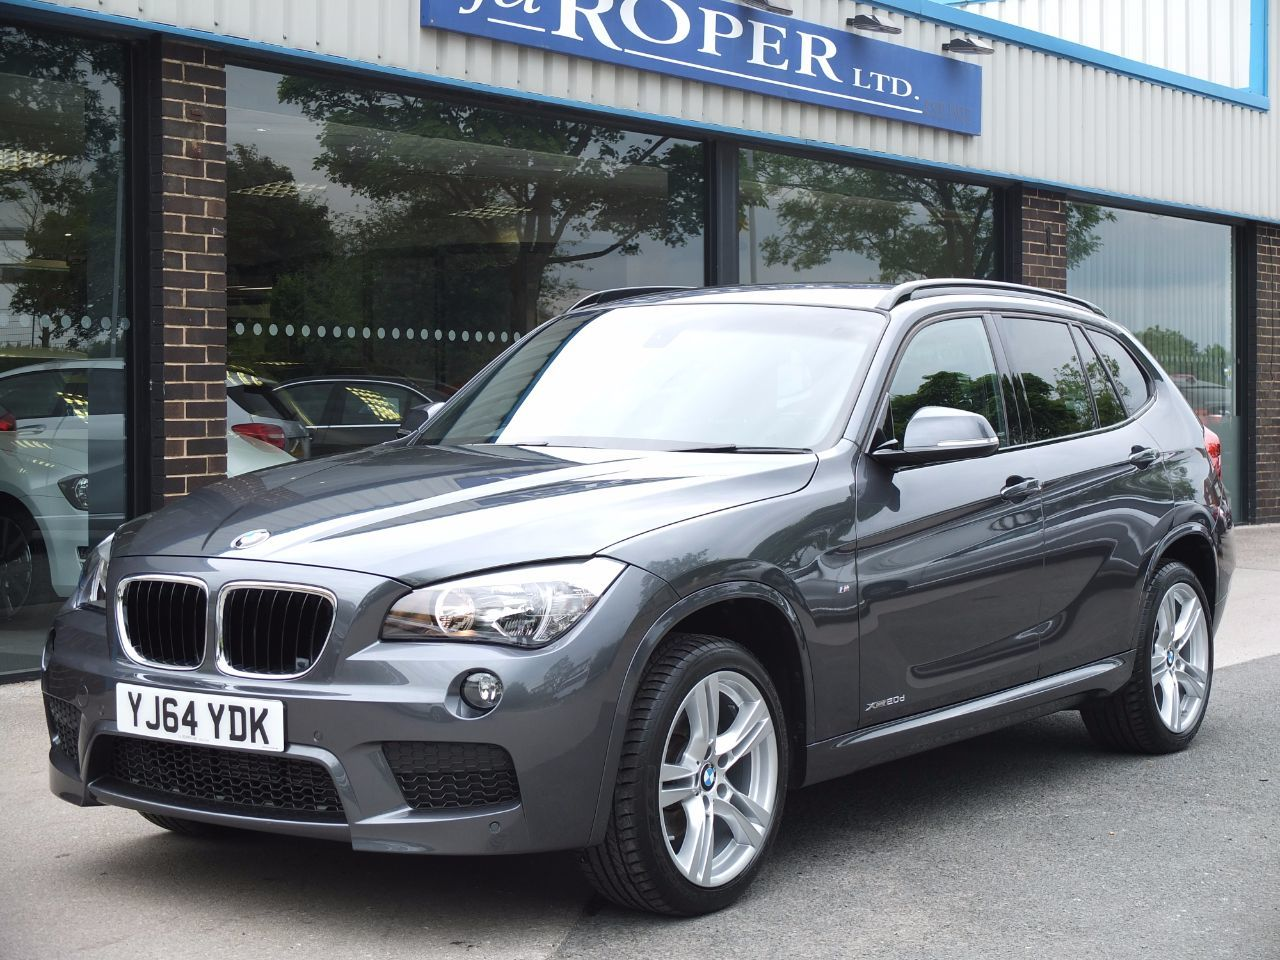 BMW X1 2.0 xDrive 20d M Sport Auto 4WD ++Spec Estate Diesel Mineral Grey MetallicBMW X1 2.0 xDrive 20d M Sport Auto 4WD ++Spec Estate Diesel Mineral Grey Metallic at fa Roper Ltd Bradford